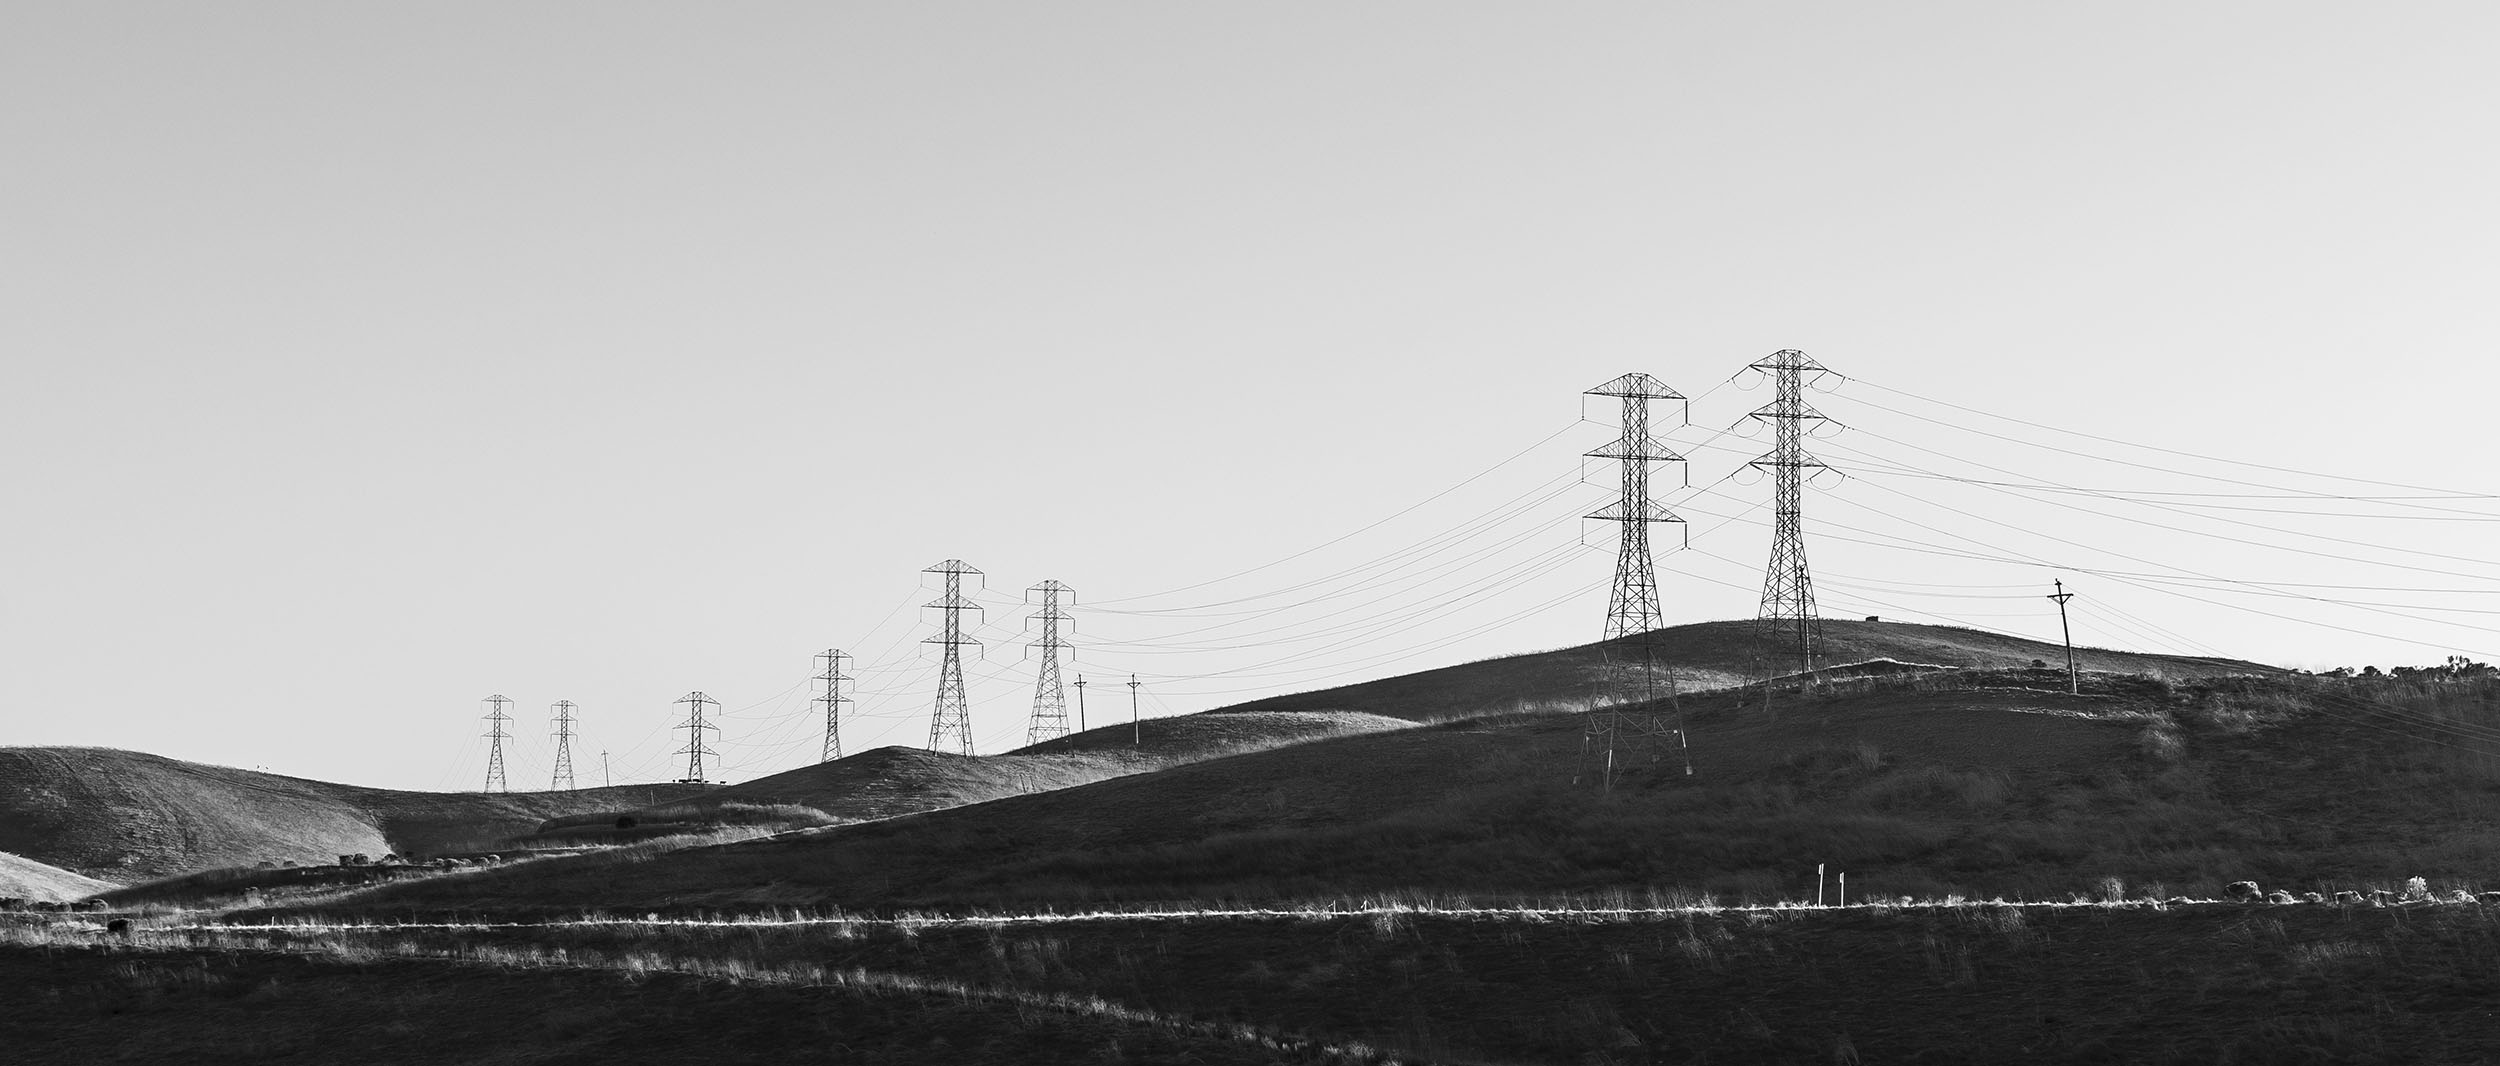 Power lines trail off into the distance over the rolling hills of San Ramon